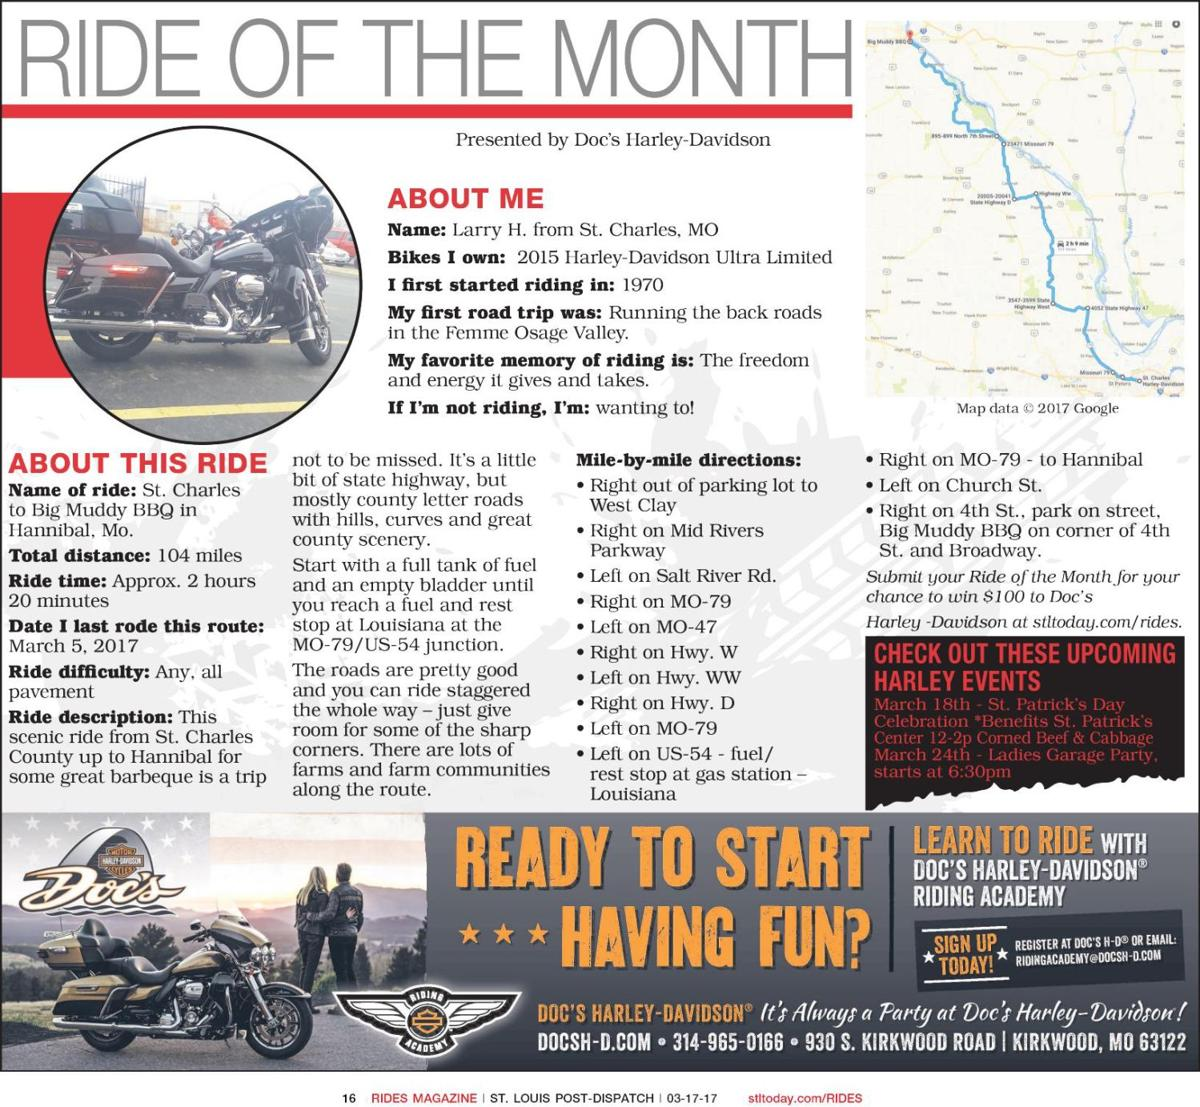 Ride of the Month: March 2017 | Automotive | stltoday.com Map Of Miles on map of downtown clayton mo, map of missouri, map of webster school district, map of downtown kirkwood, map of glendale ca, map of us school shooting locations, map of st. louis mo, map of dardenne prairie mo, map of western red bat, map of stevens point school districts,